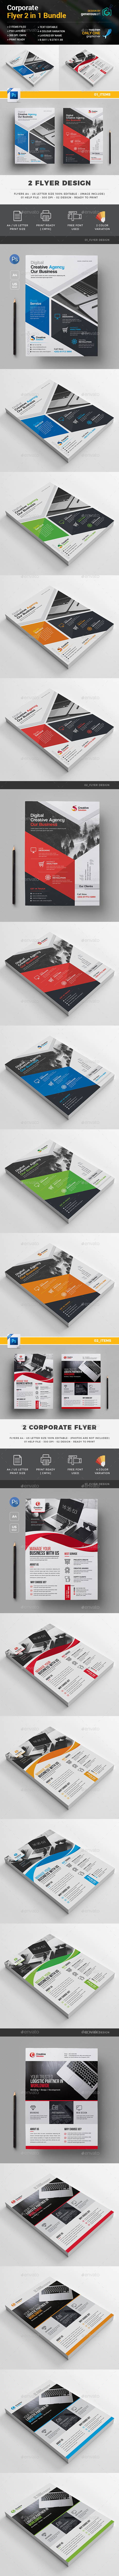 Flyer Bundle 2 in 1 - Flyers Print Templates